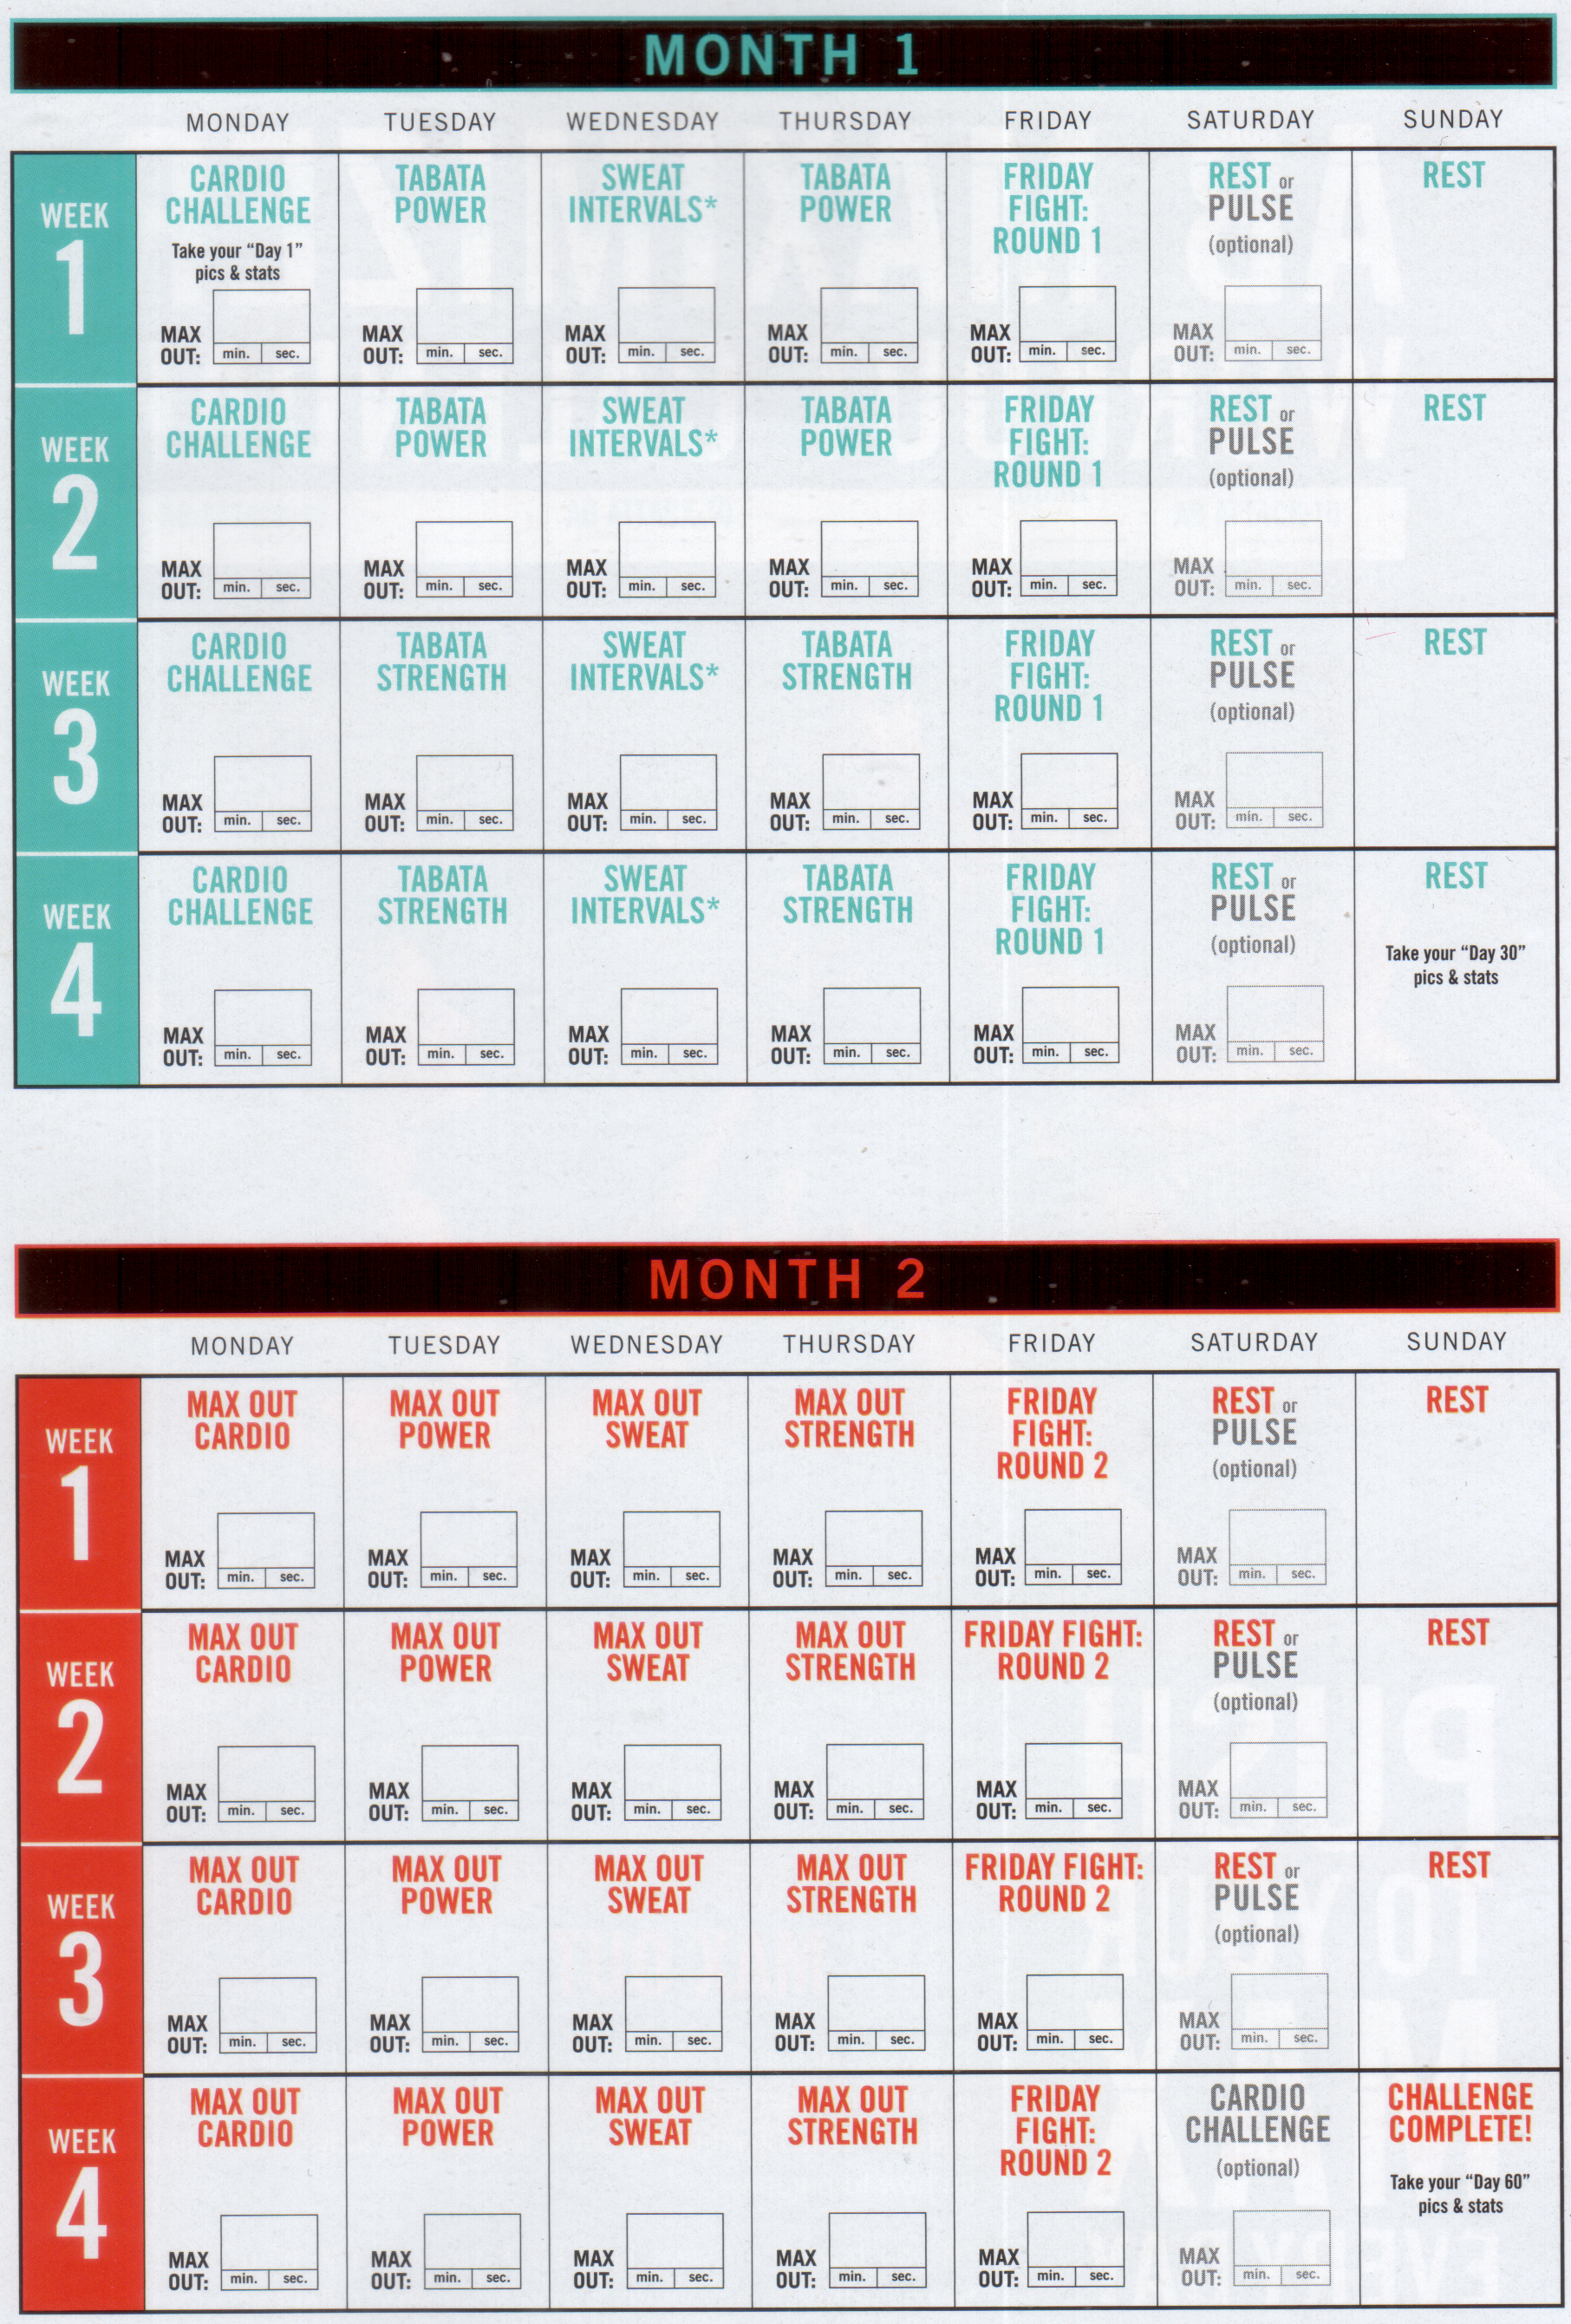 Schedule | Insanity Max 30, Insanity Max 30 Schedule regarding Insanity Max 30 Schedule Pdf